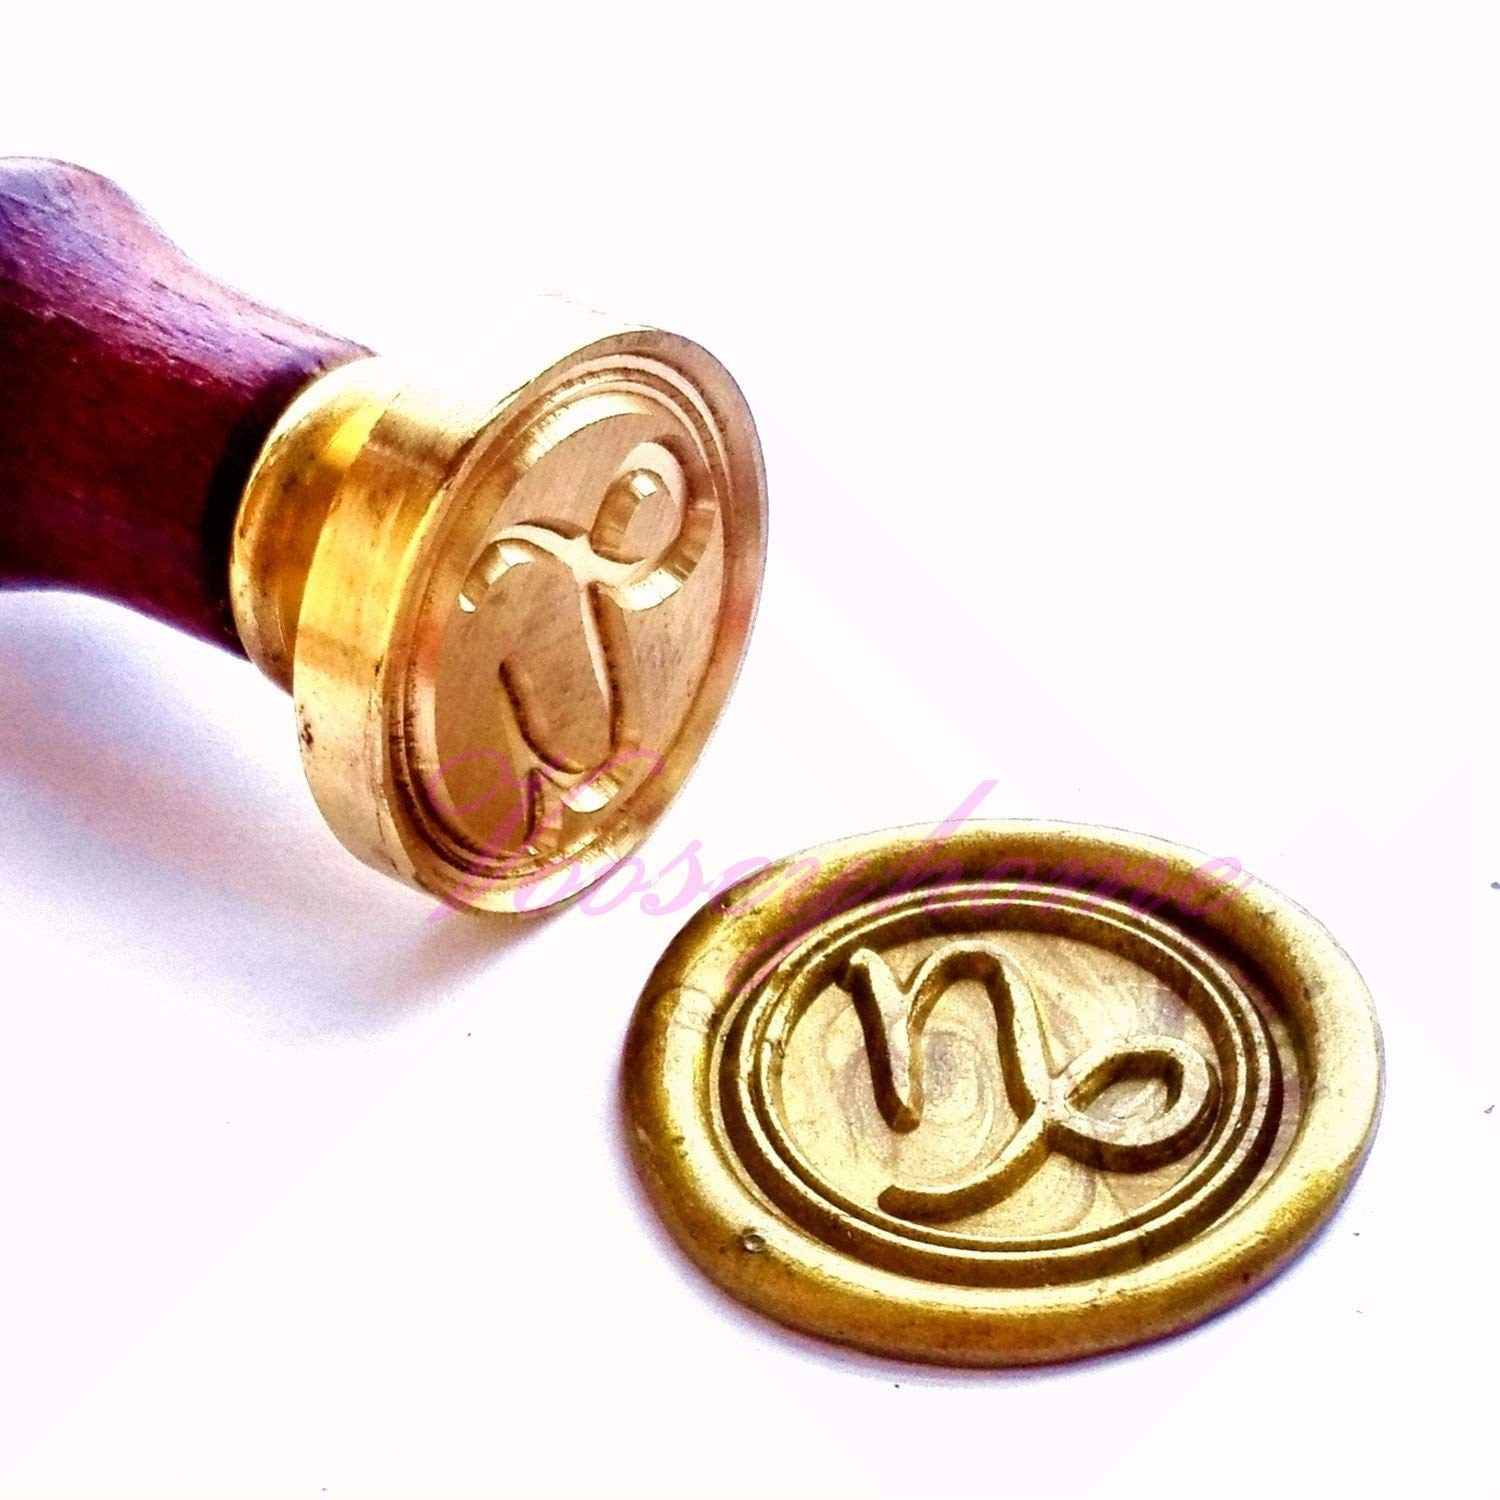 Vooseyhome The Horoscope Capricorn - Sign of Zodiac Wax Seal Stamp with Rosewood Handle - Ideal for Decorating Gift Packing, Envelopes, Parcels, Invitations, Scrapbook, etc